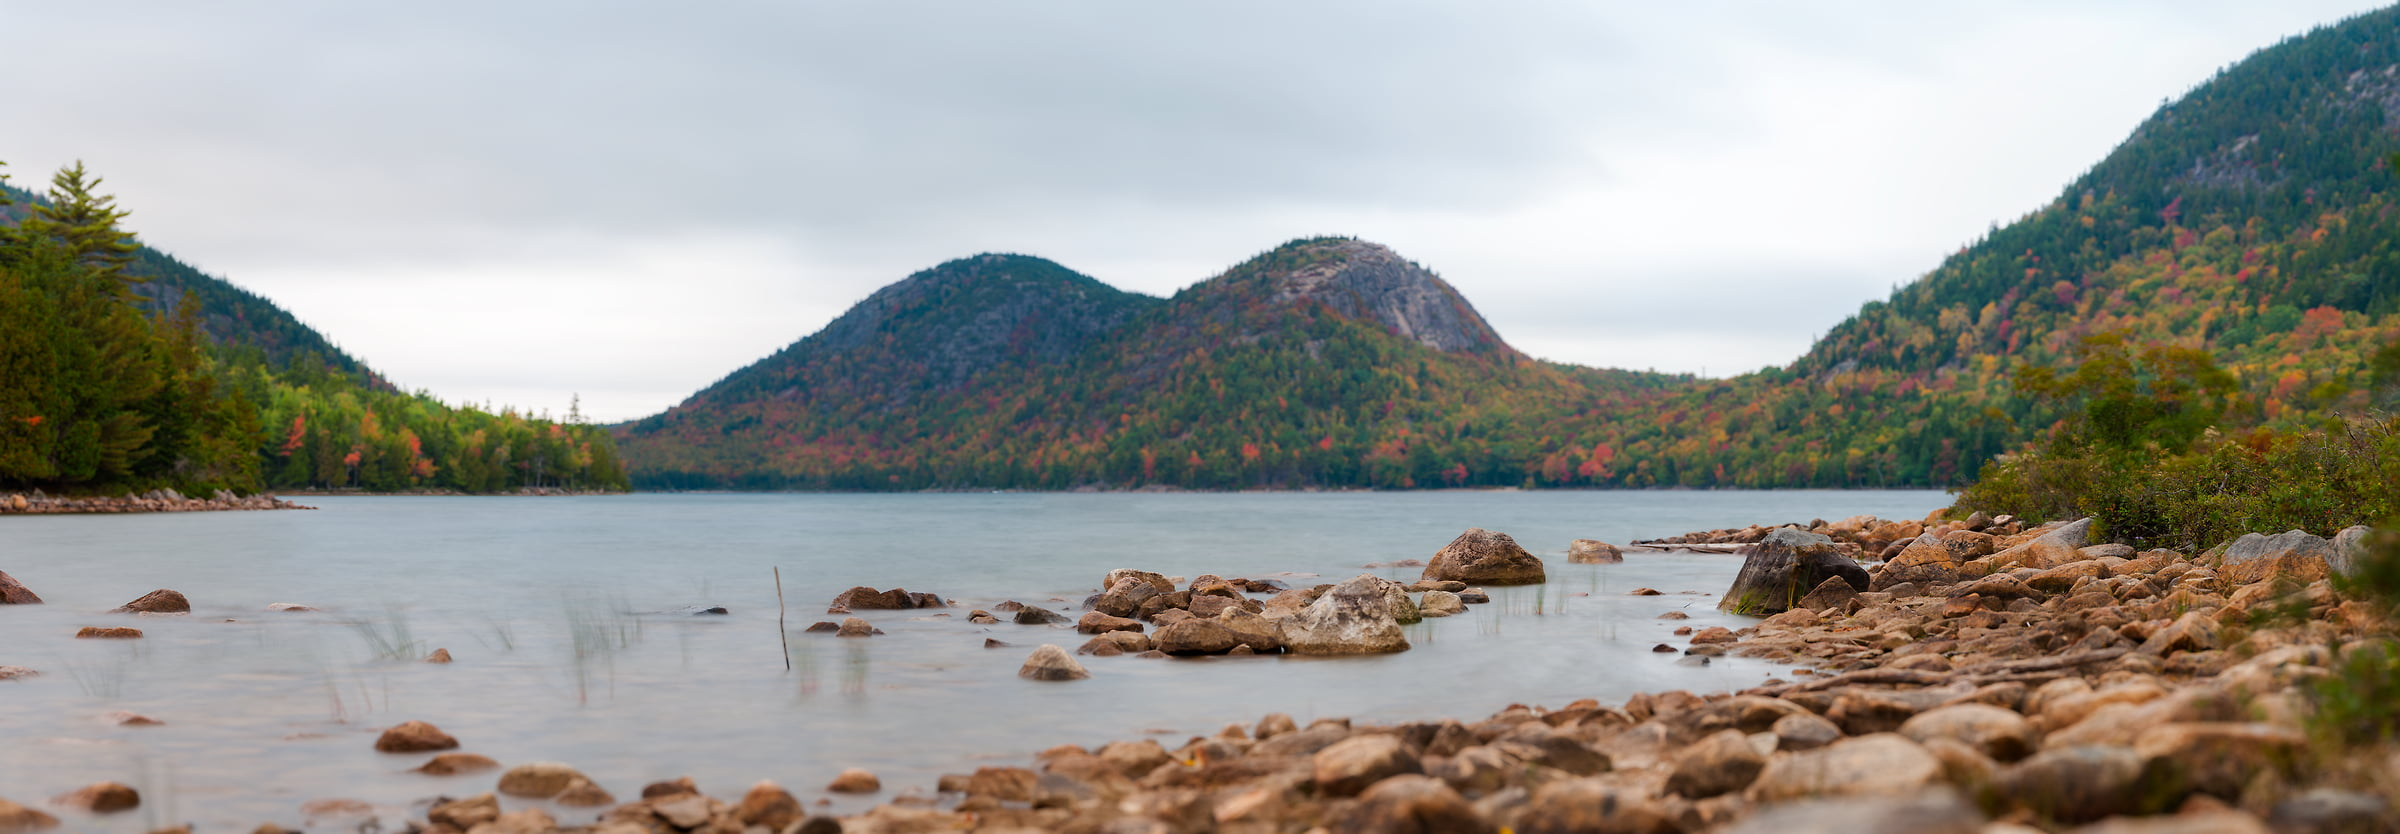 118 megapixels! A very high resolution, large-format VAST photo of Jordan Pond in Acadia National Park; fine art landscape photograph created by Aaron Priest in Maine, New England